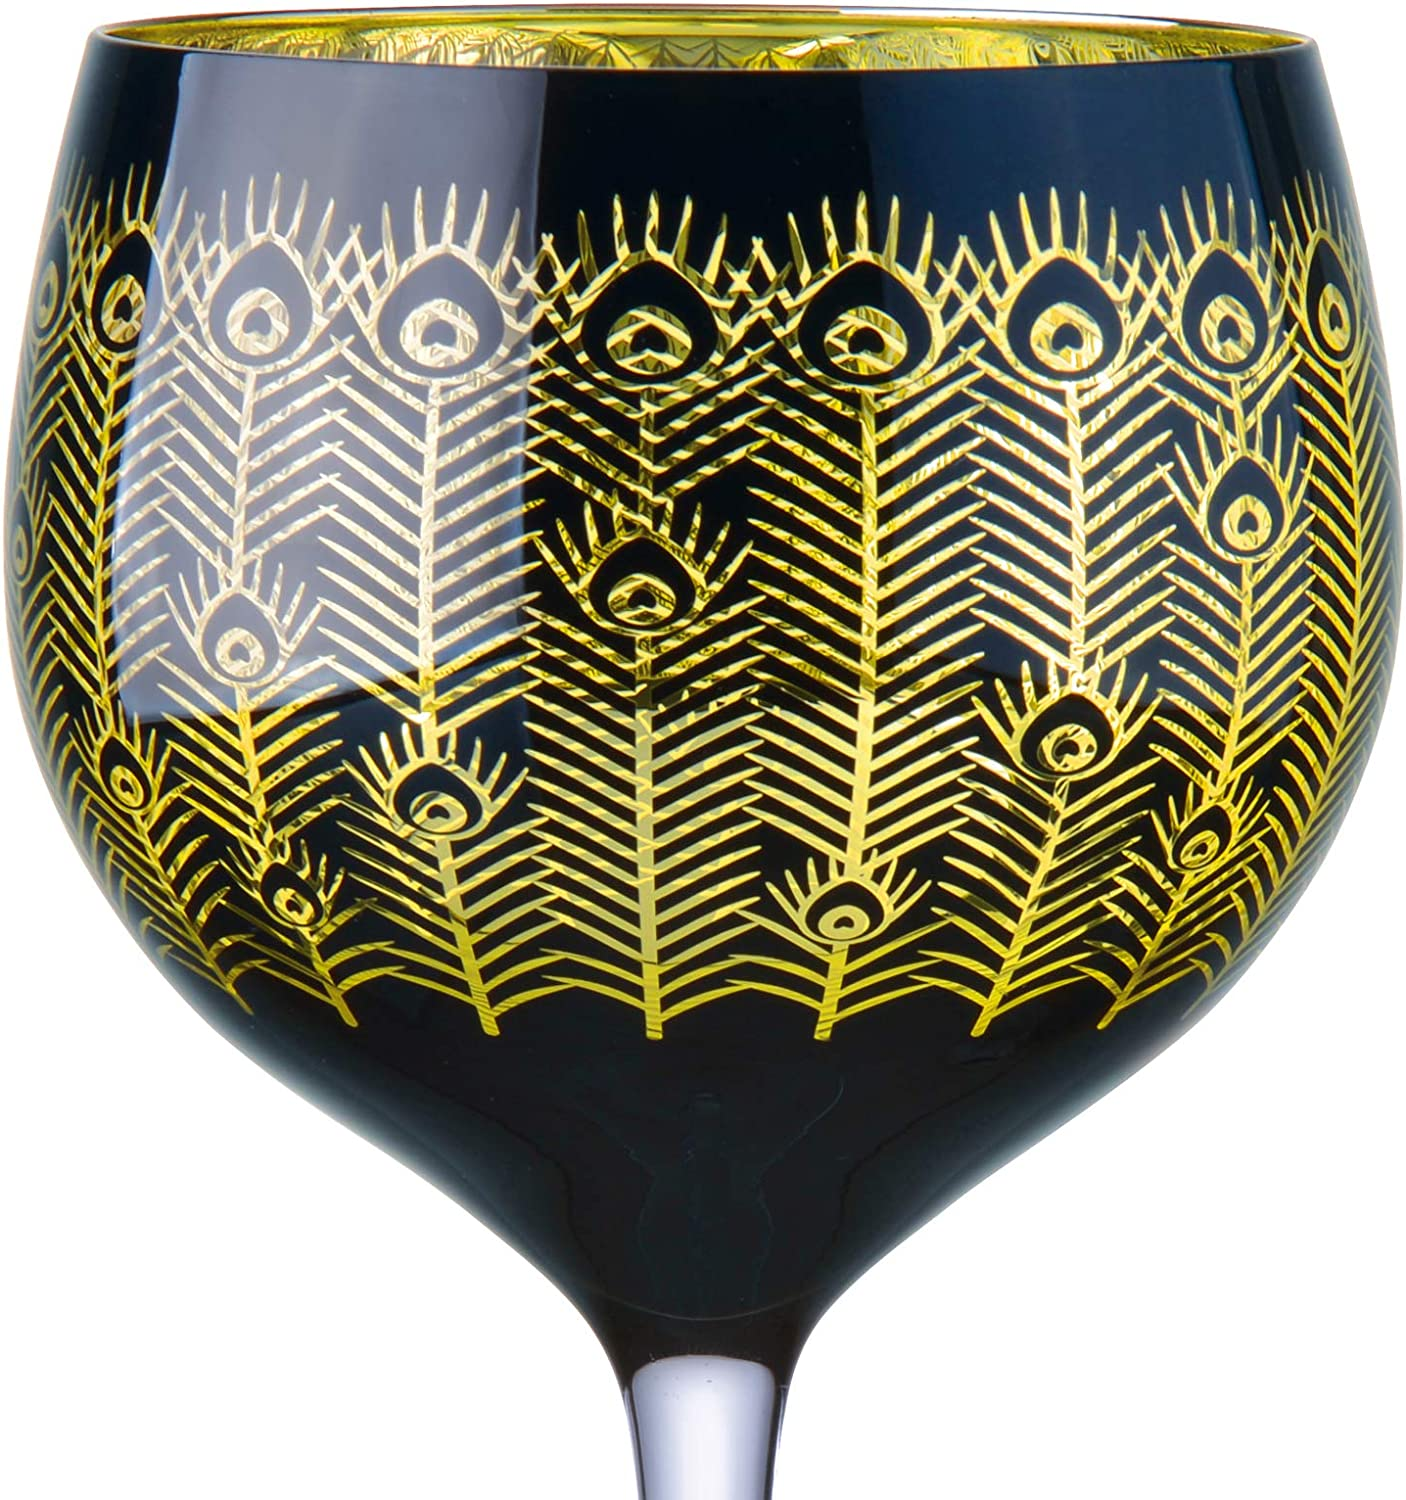 Detailed and Elegant Gold /& Black Feather Design Gold /& Black Set of 2 Artland 700ml Capacity Per Glass Midnight Peacock Gin Glasses Perfect Home Bar Addition